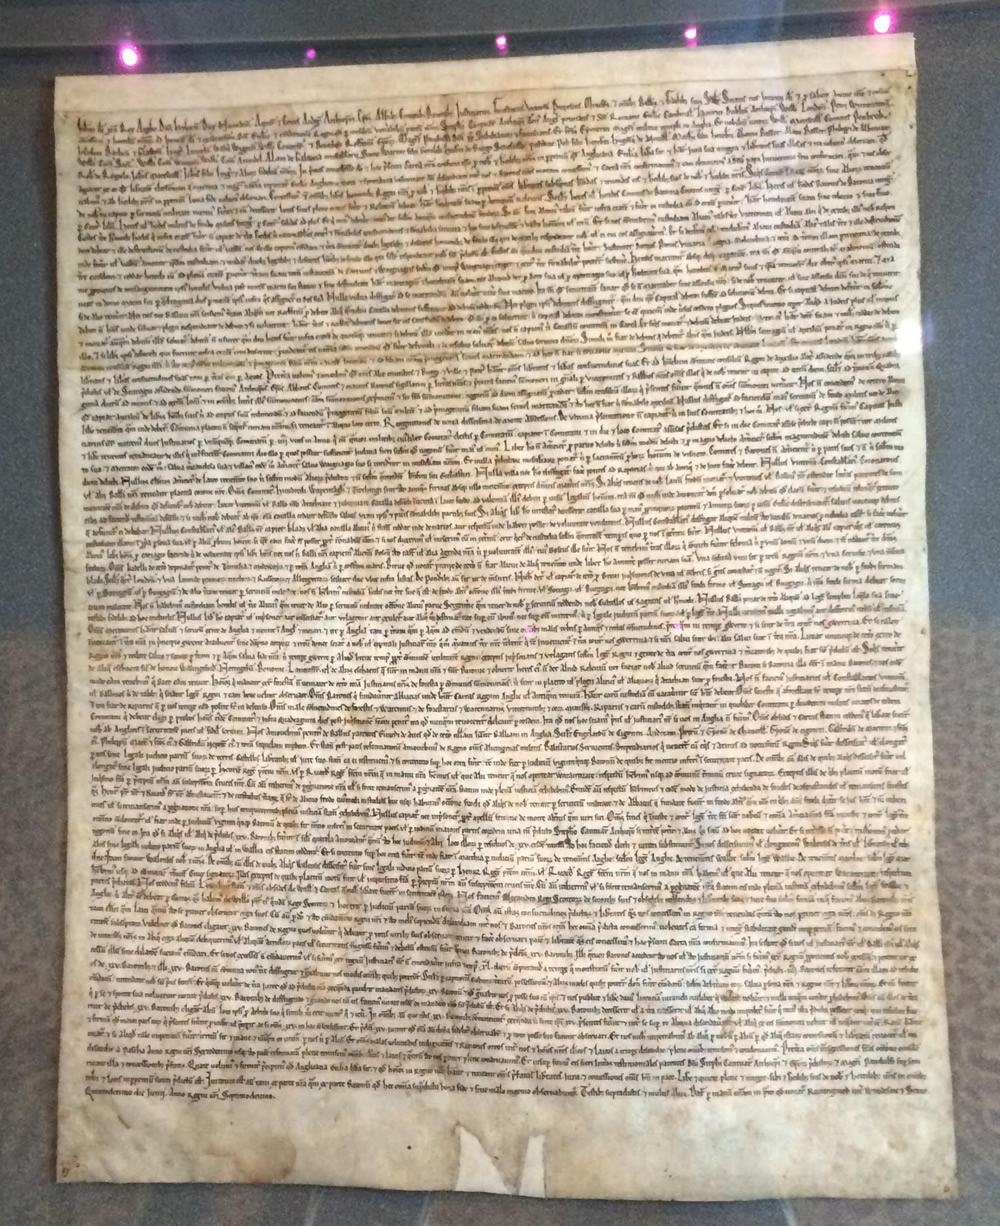 800 Years of Magna Carta: The Foundation of Liberty